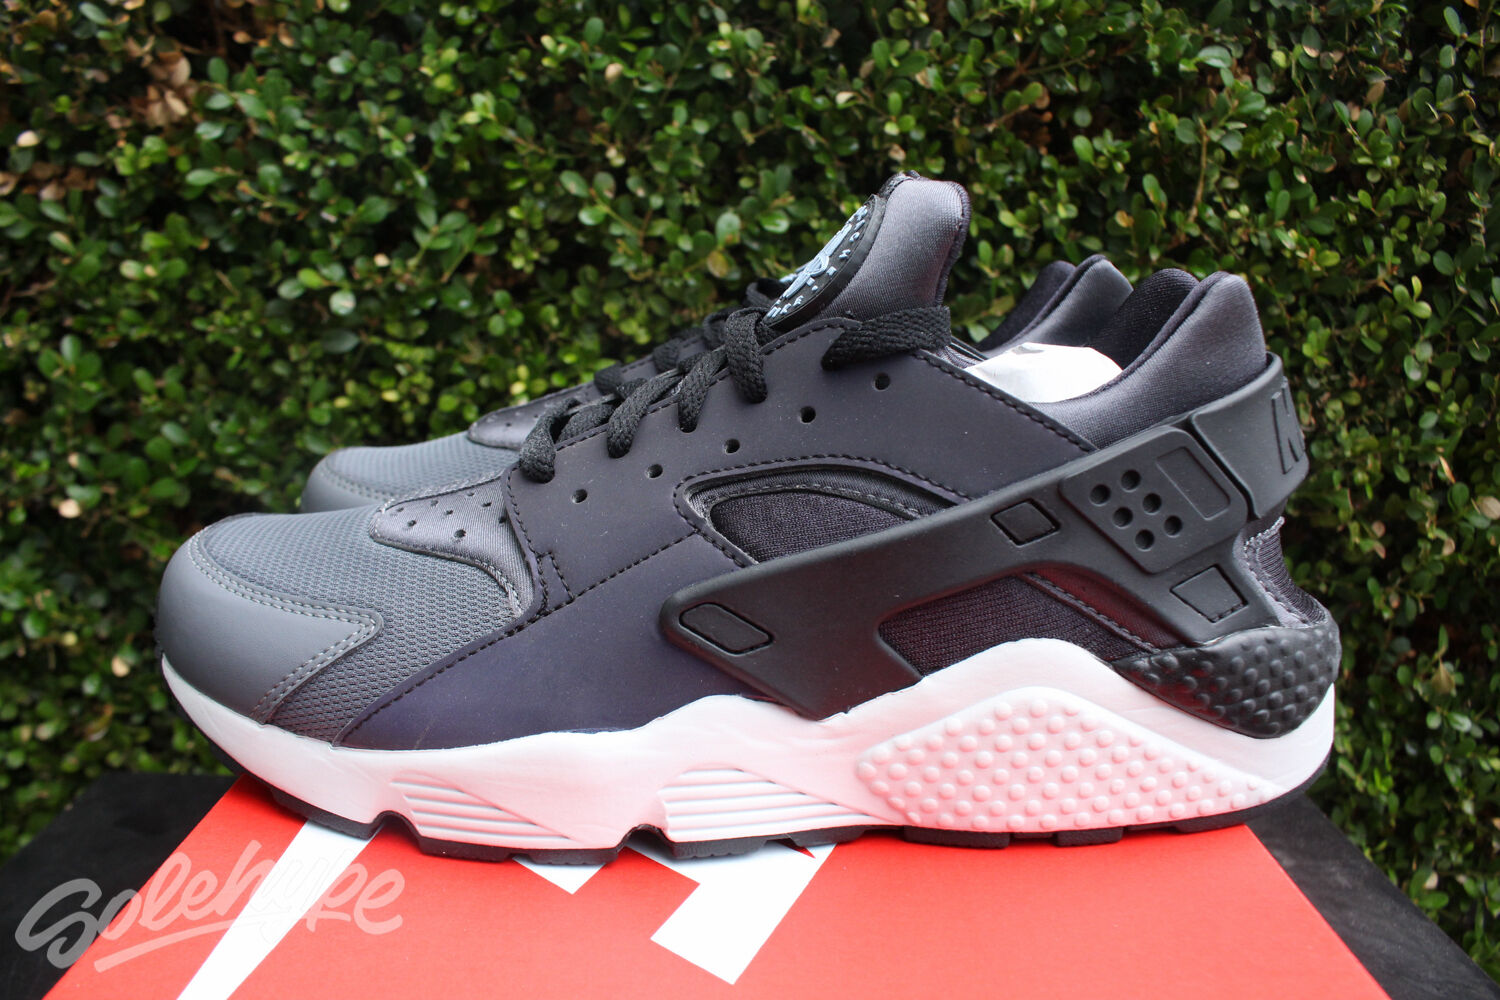 Nike Air 8,5 huarache Run Premium SZ 8,5 Air gris oscuro negro reflectante PMR e0674d